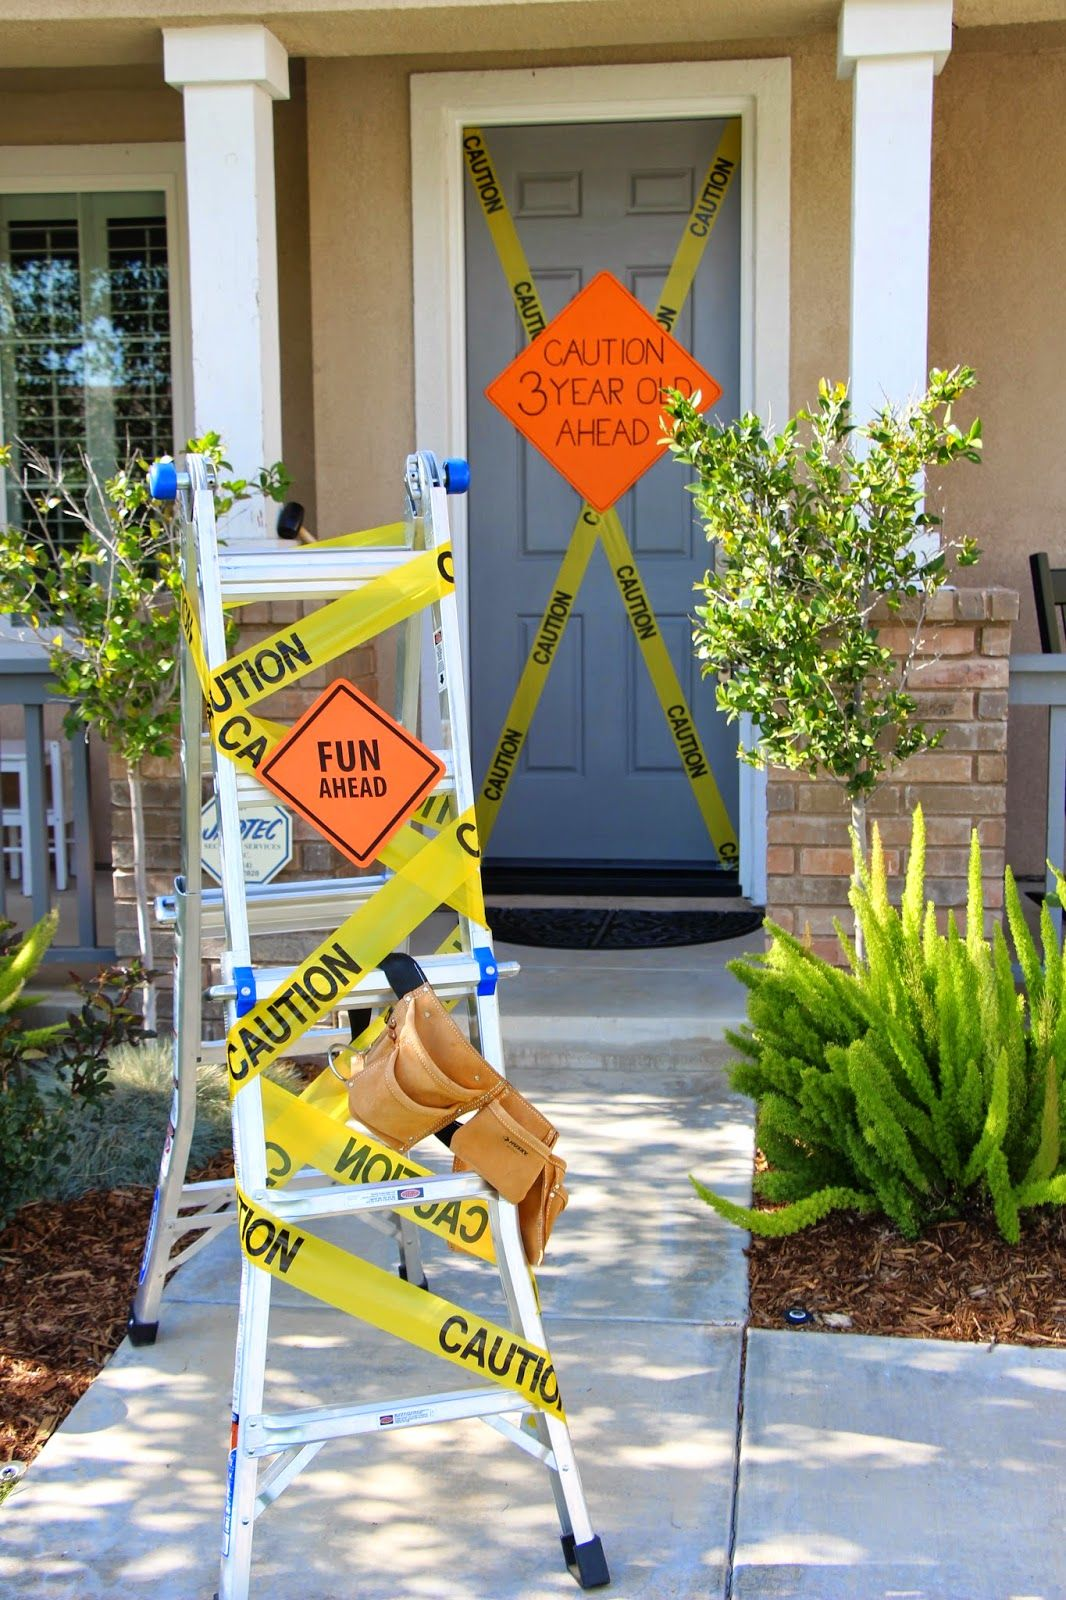 Construction Birthday Party Front Door And Yard Decorations Fun Ahead Caution 3 Year Old